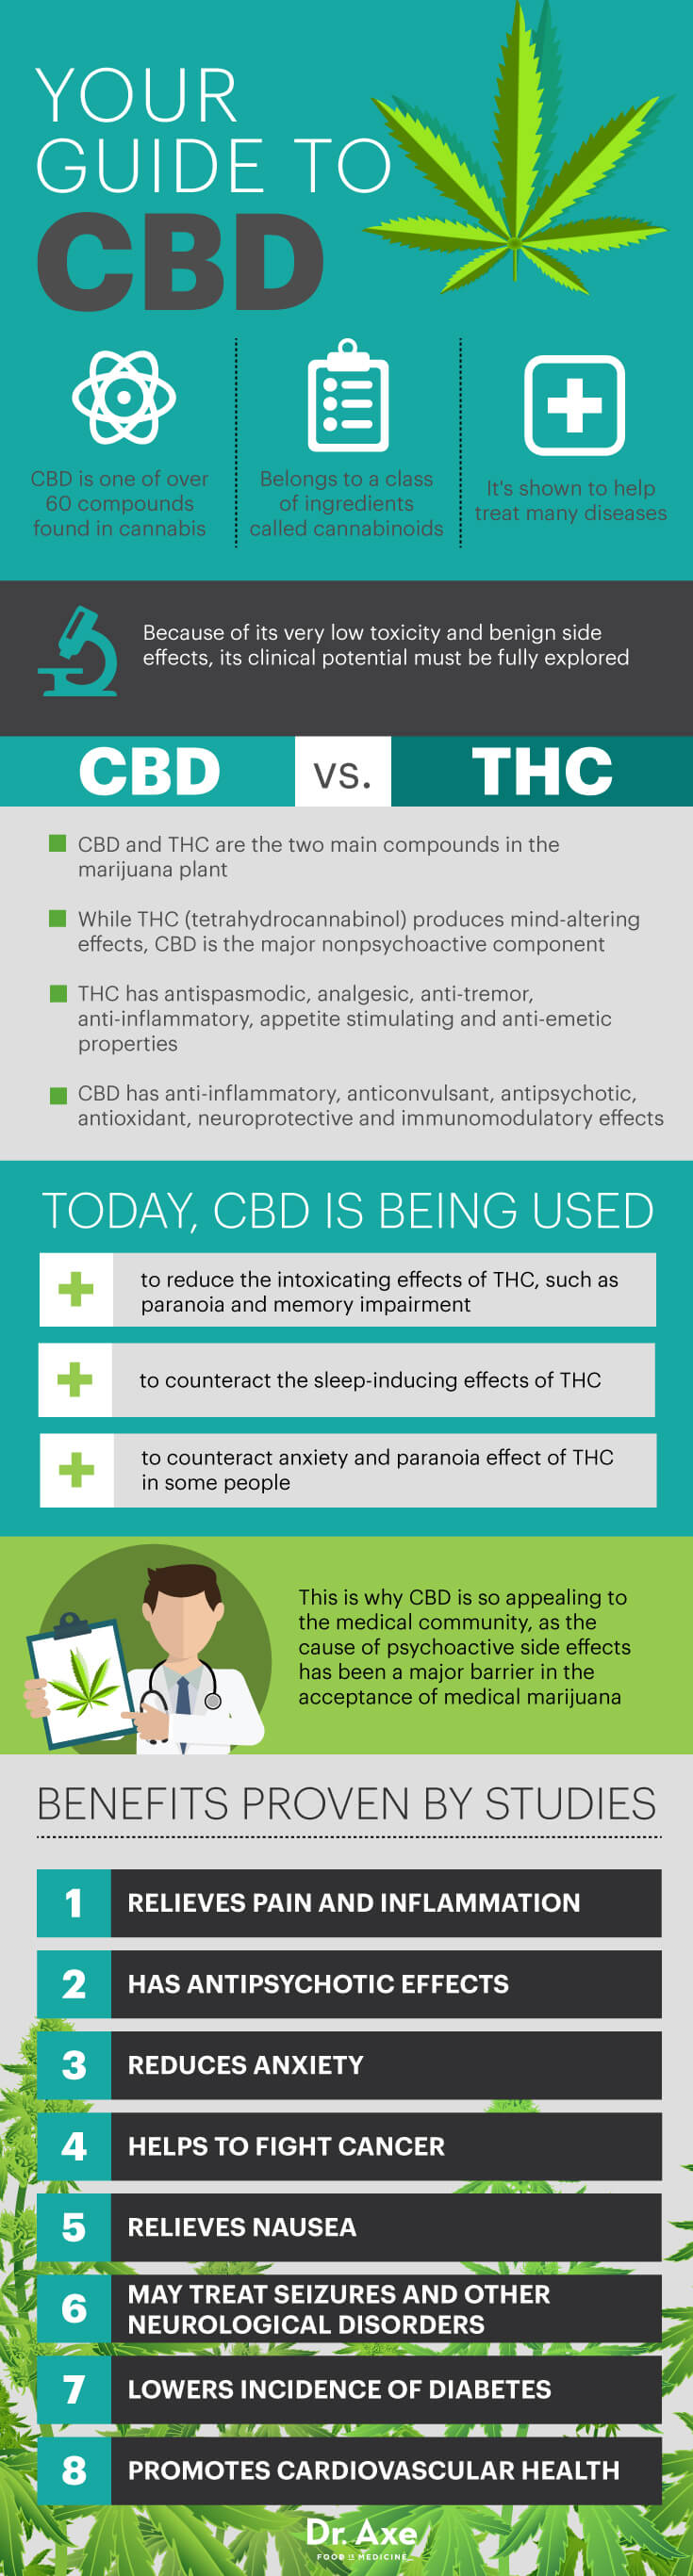 Let's get things straight! - We often find that many people are confused or misinformed when it comes to CBD and its many uses. It is important to know all the facts so you can find out if adding CBD to your daily intake is right for you. CBDs are wonderful and have many great benefits. We hope this article will help everyone come to a better understanding of its healing properties!